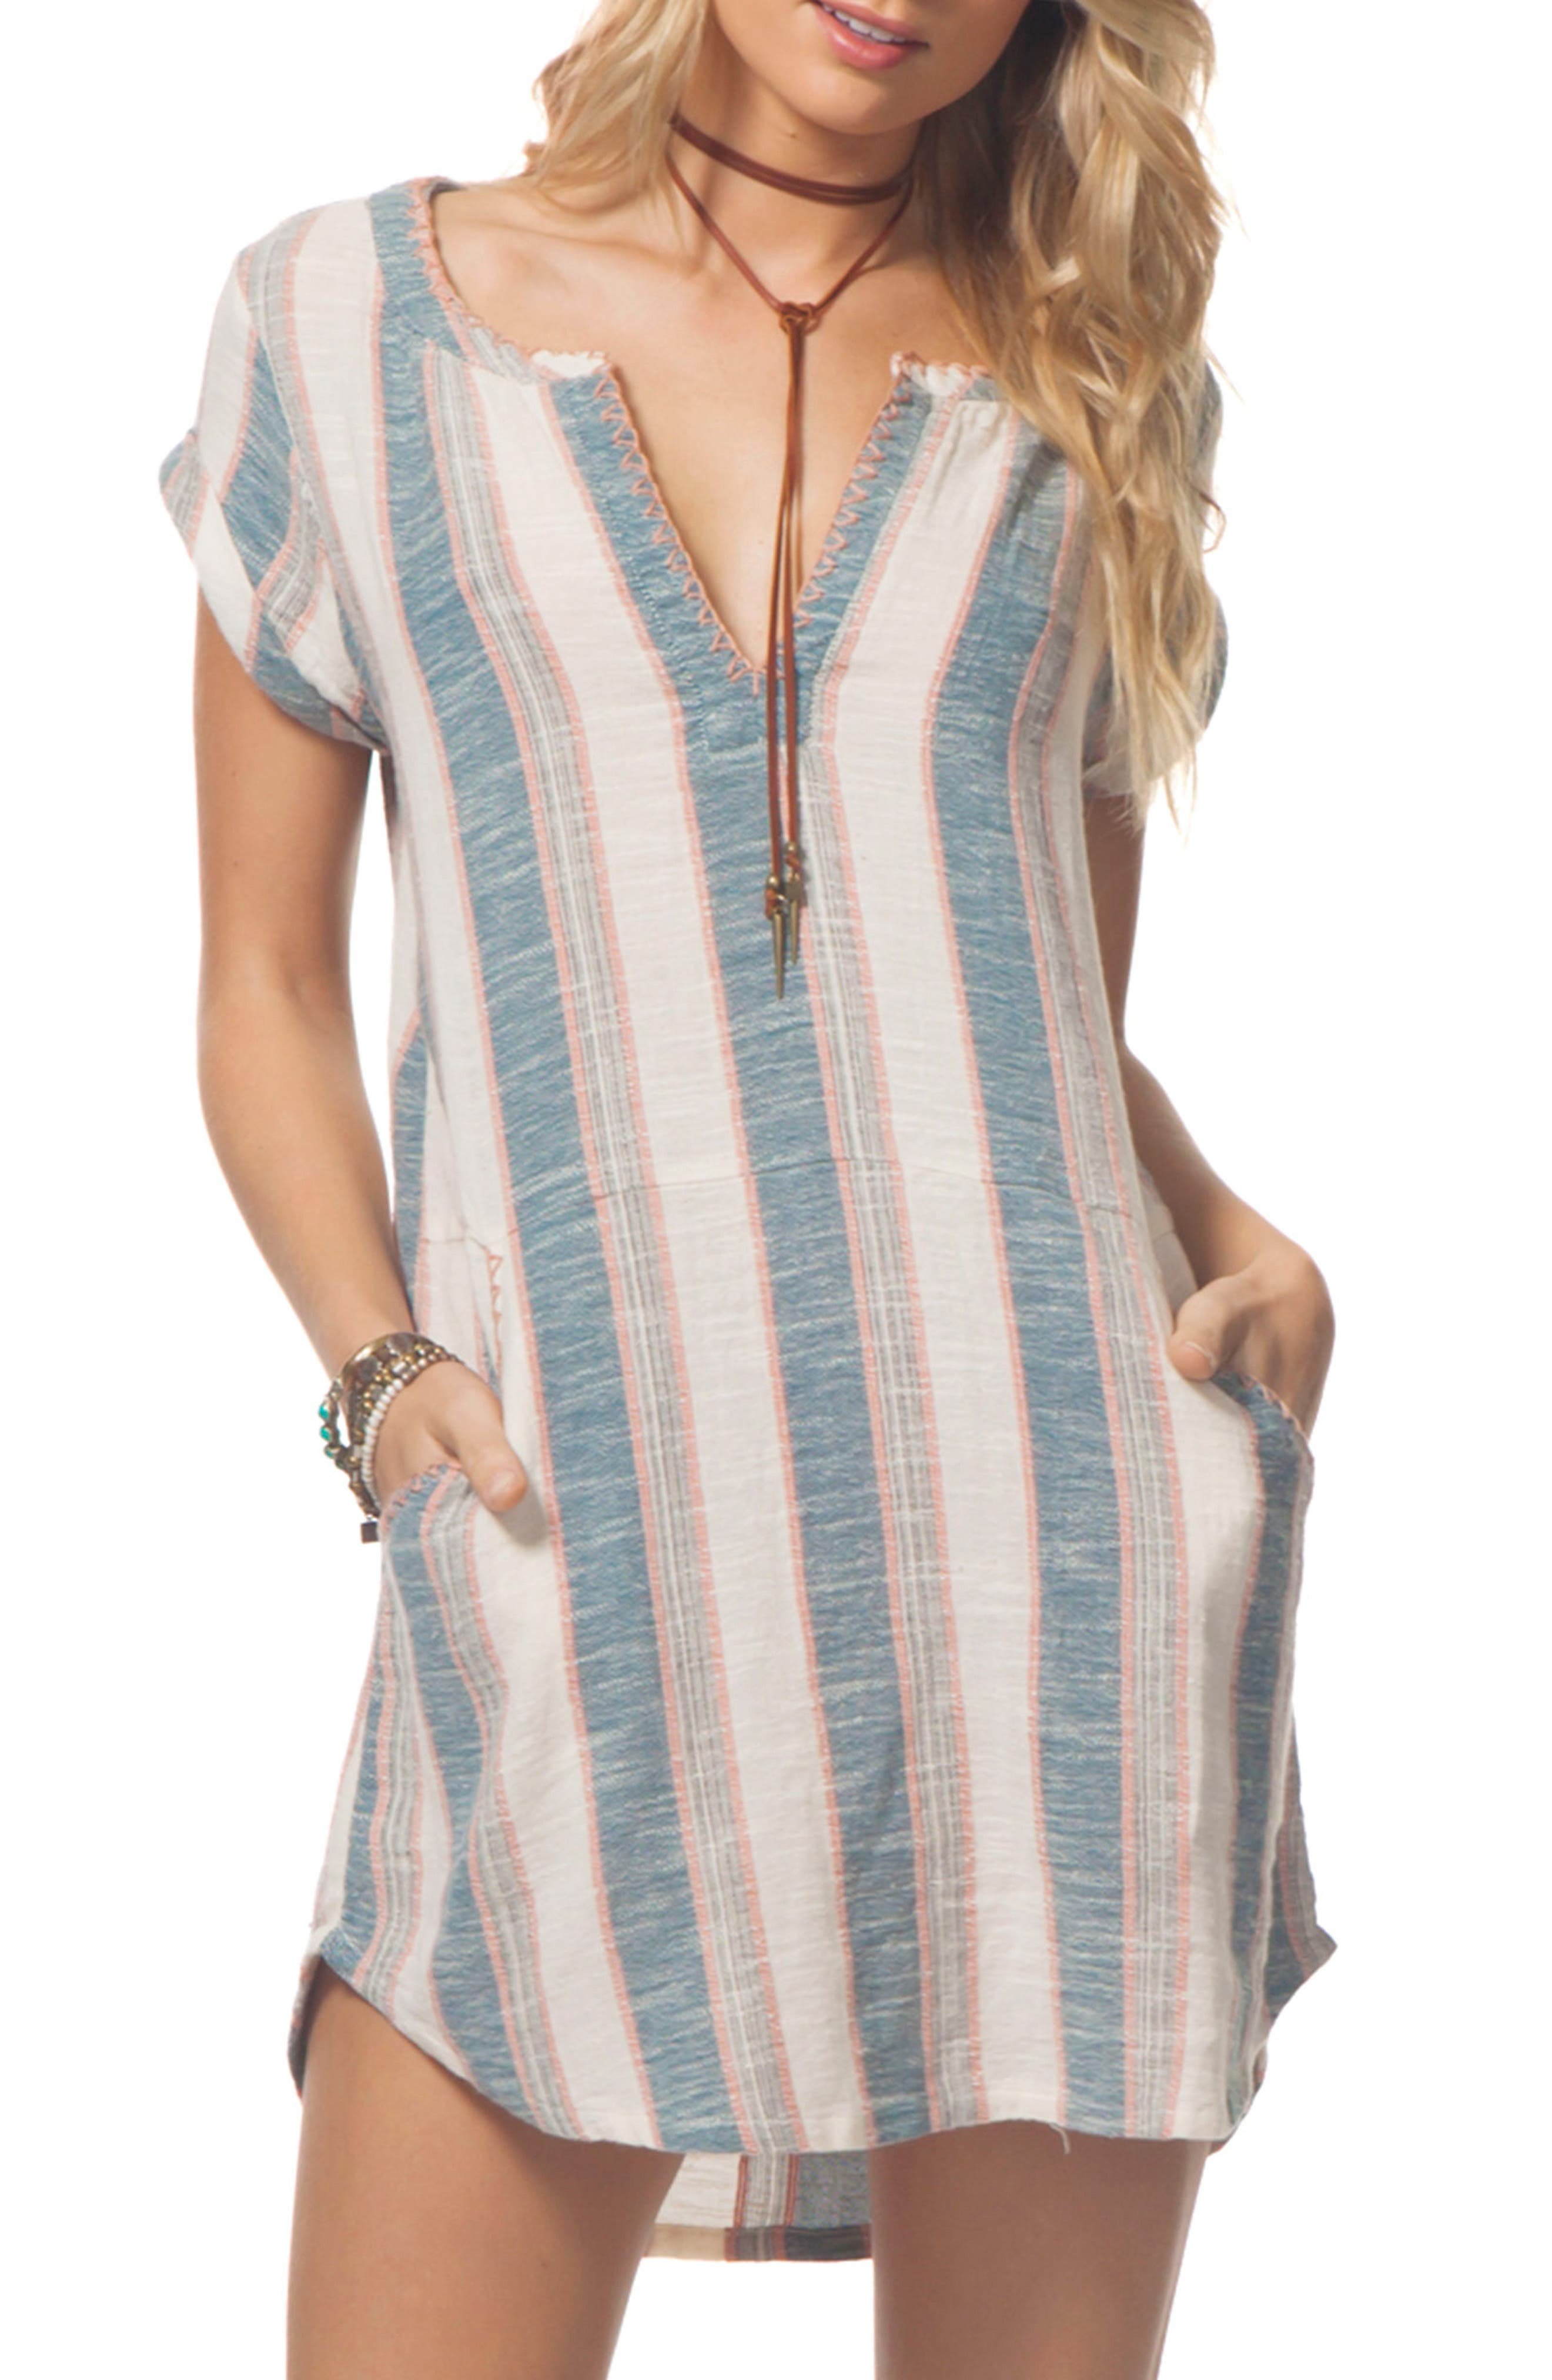 Rip Curl Beachcomber Dress